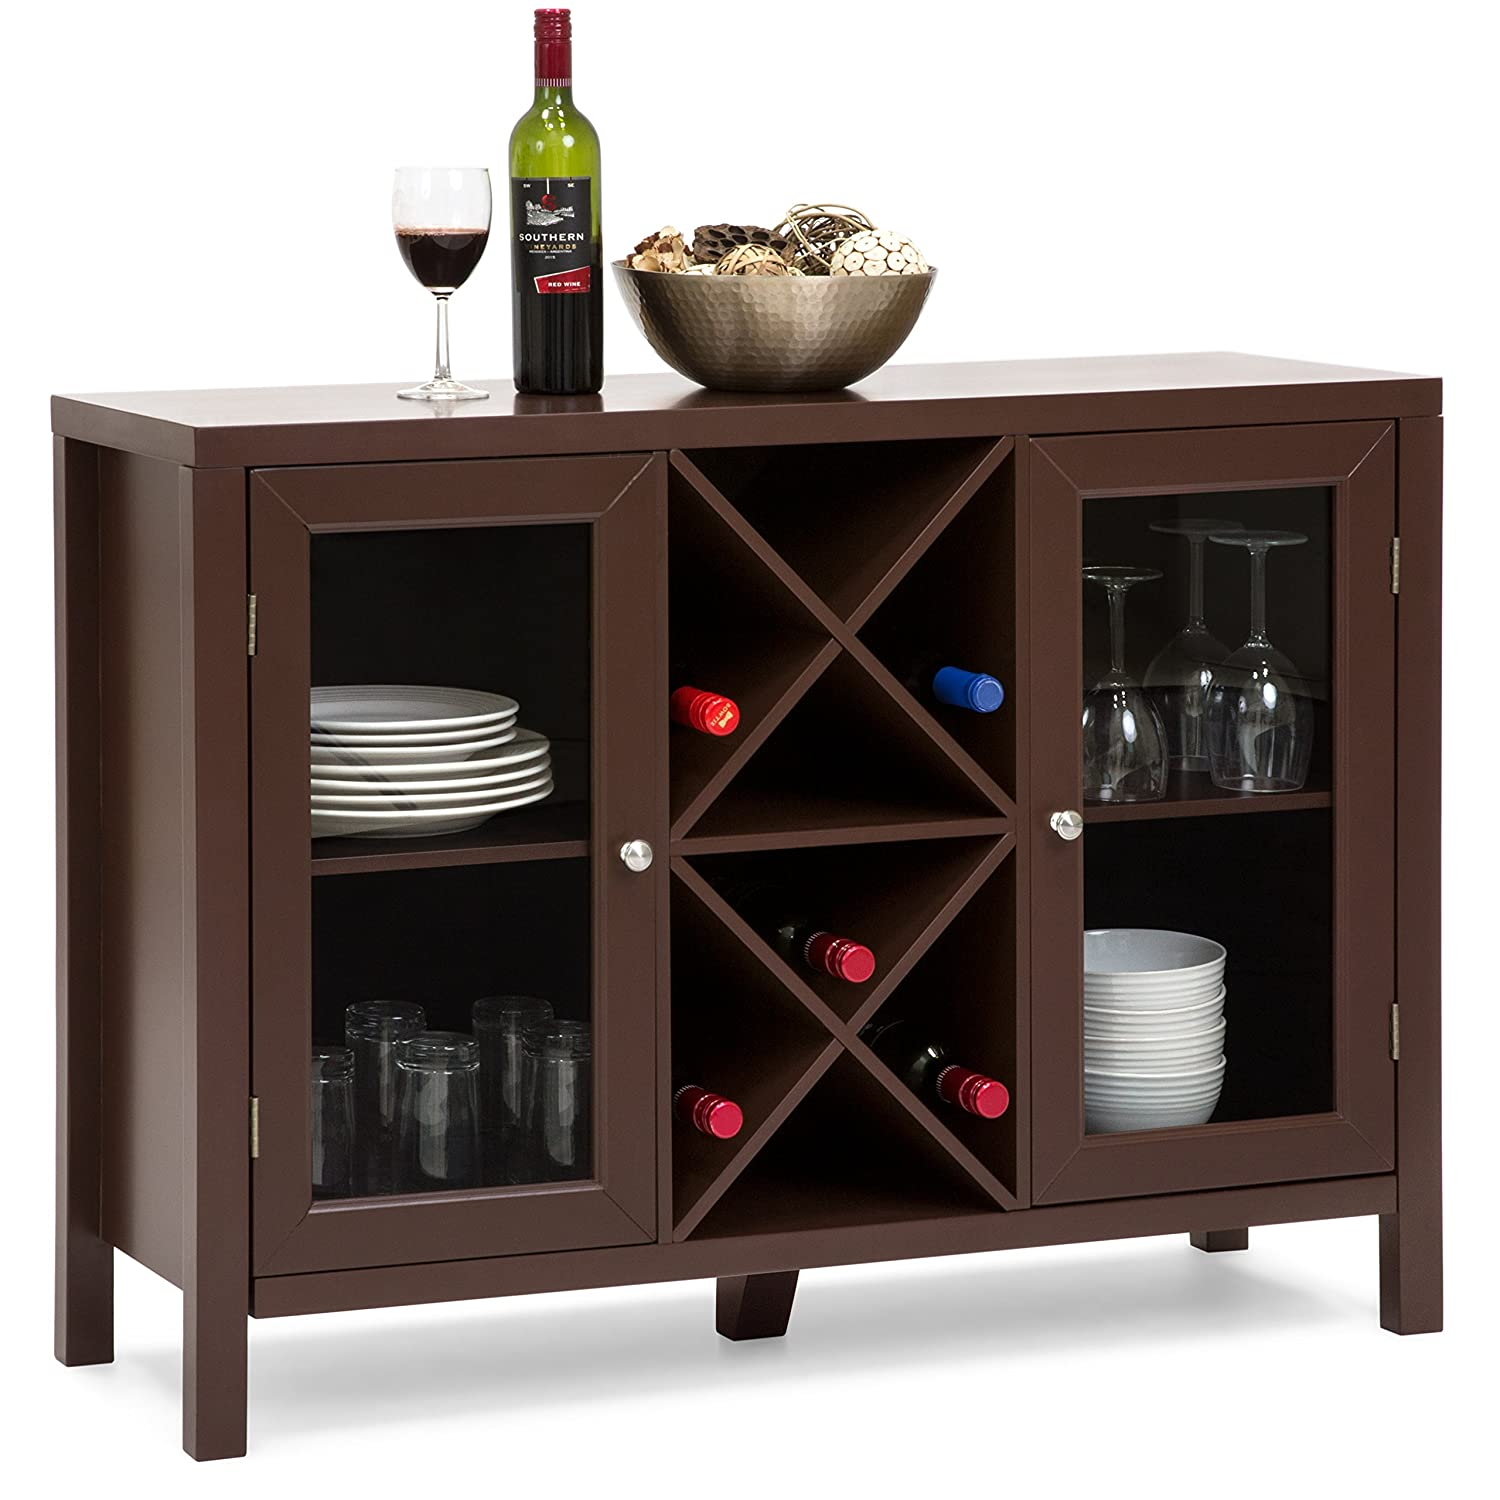 Best Choice Products Wooden Wine Rack Console Sideboard Table w/Storage - Black SKY4146